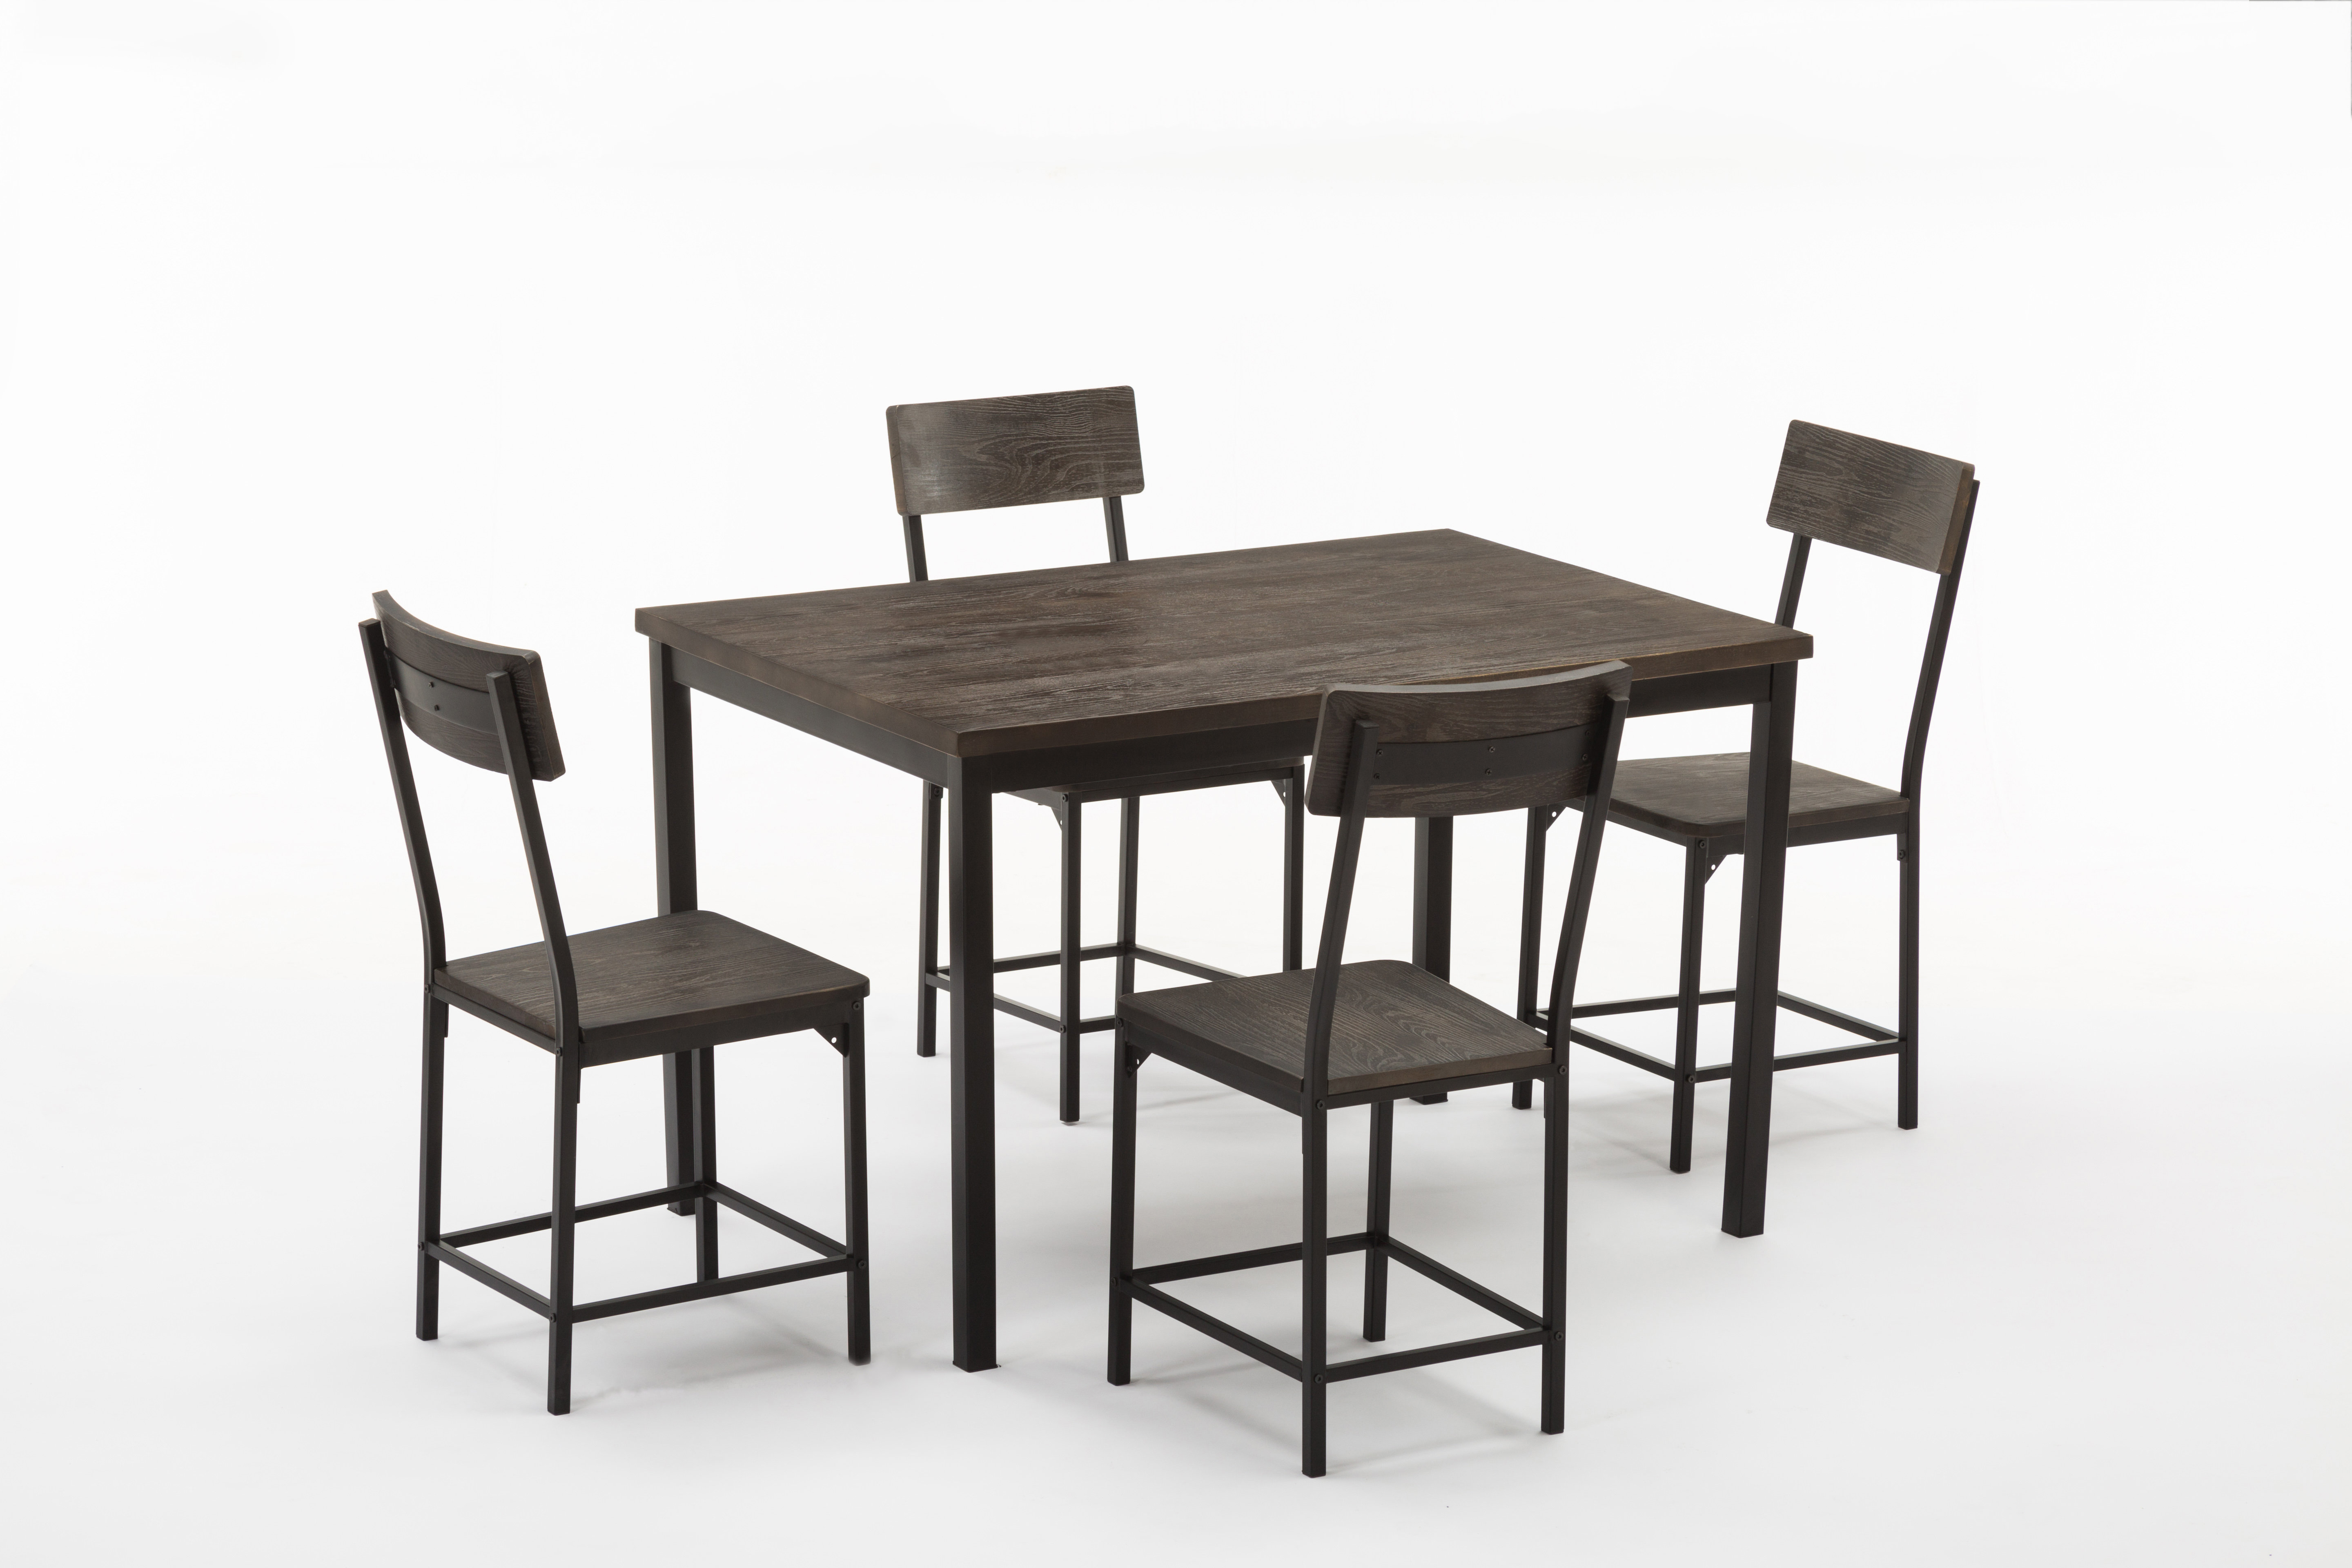 Allmodern With Best And Newest Bryson 5 Piece Dining Sets (#3 of 20)